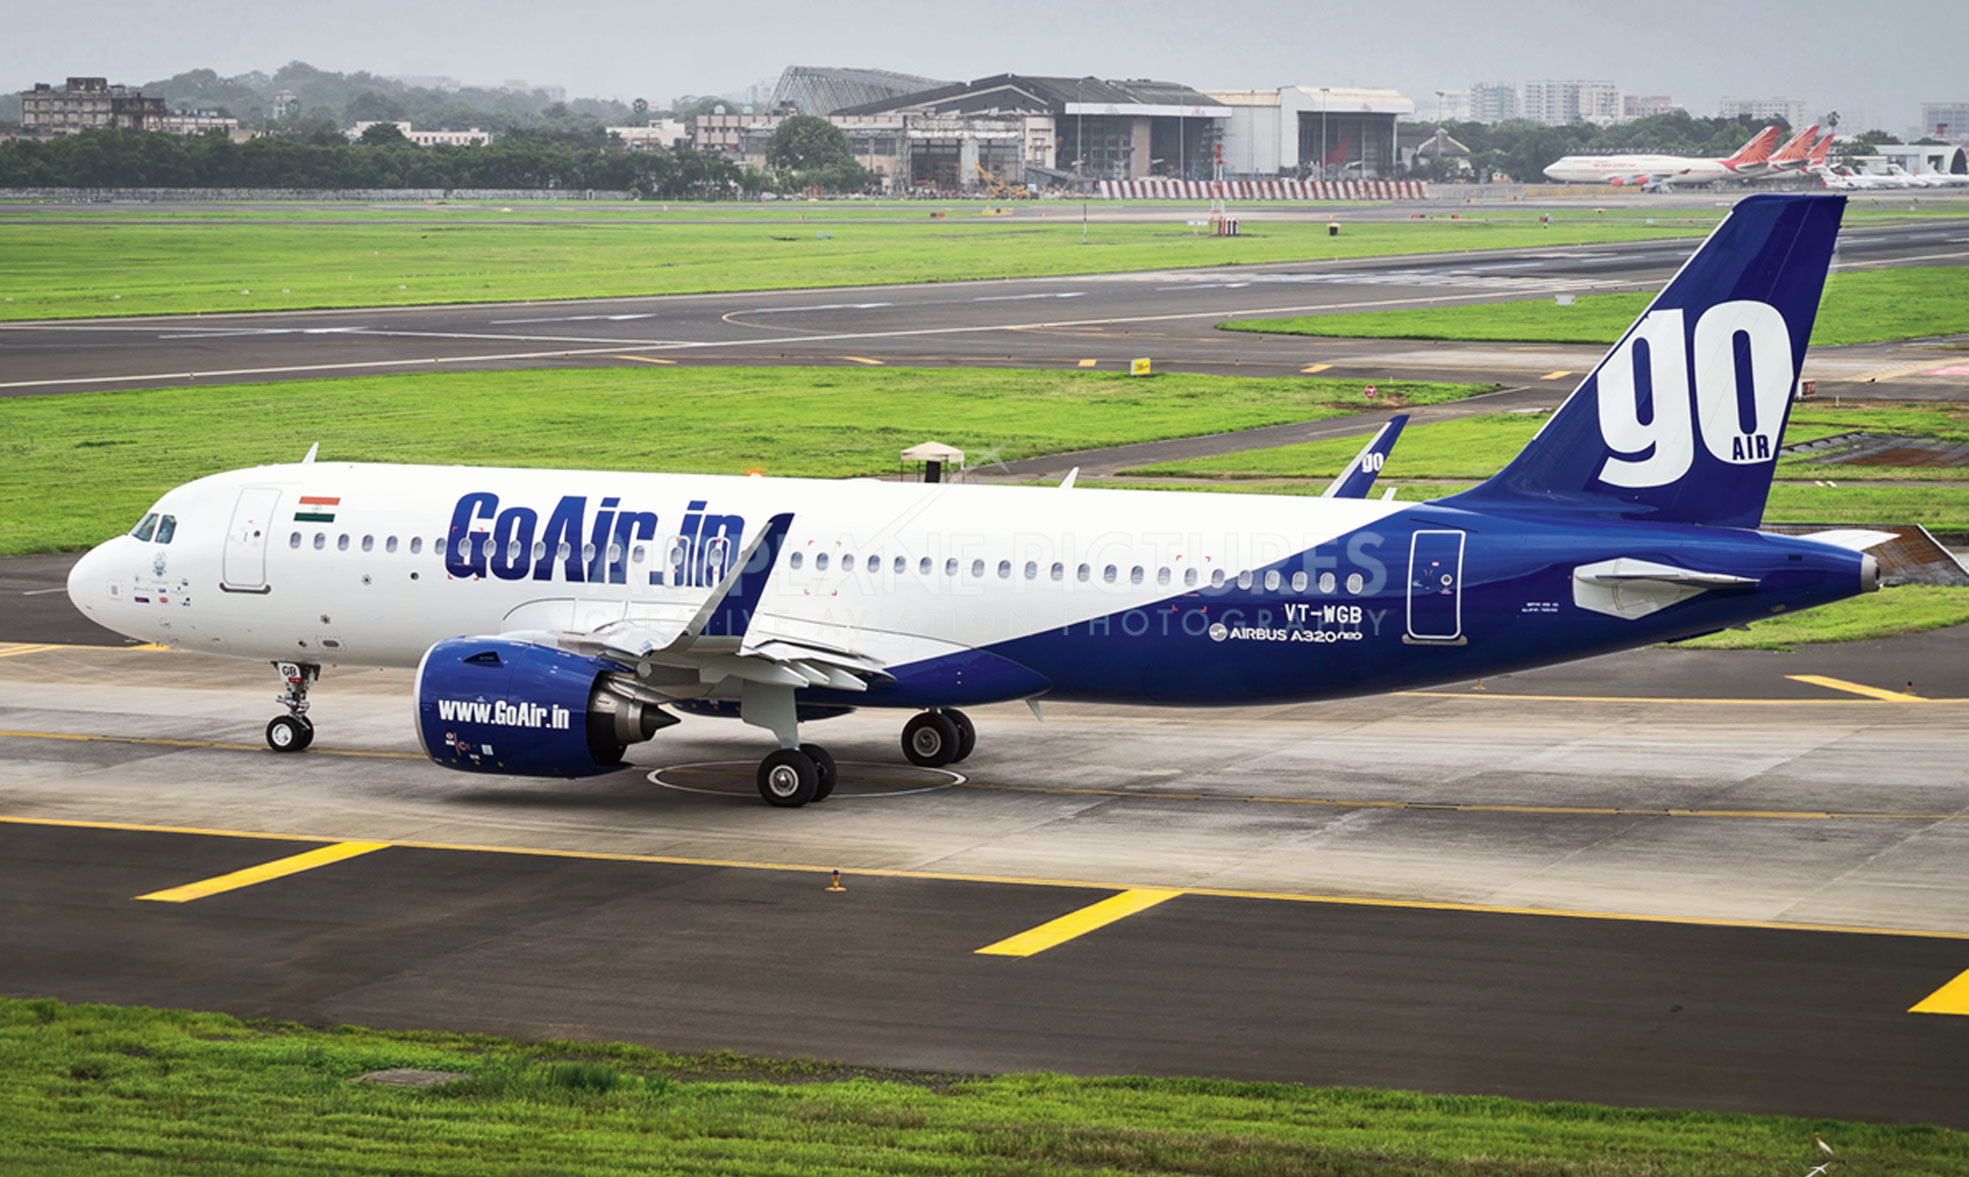 A picture of a GoAir plane